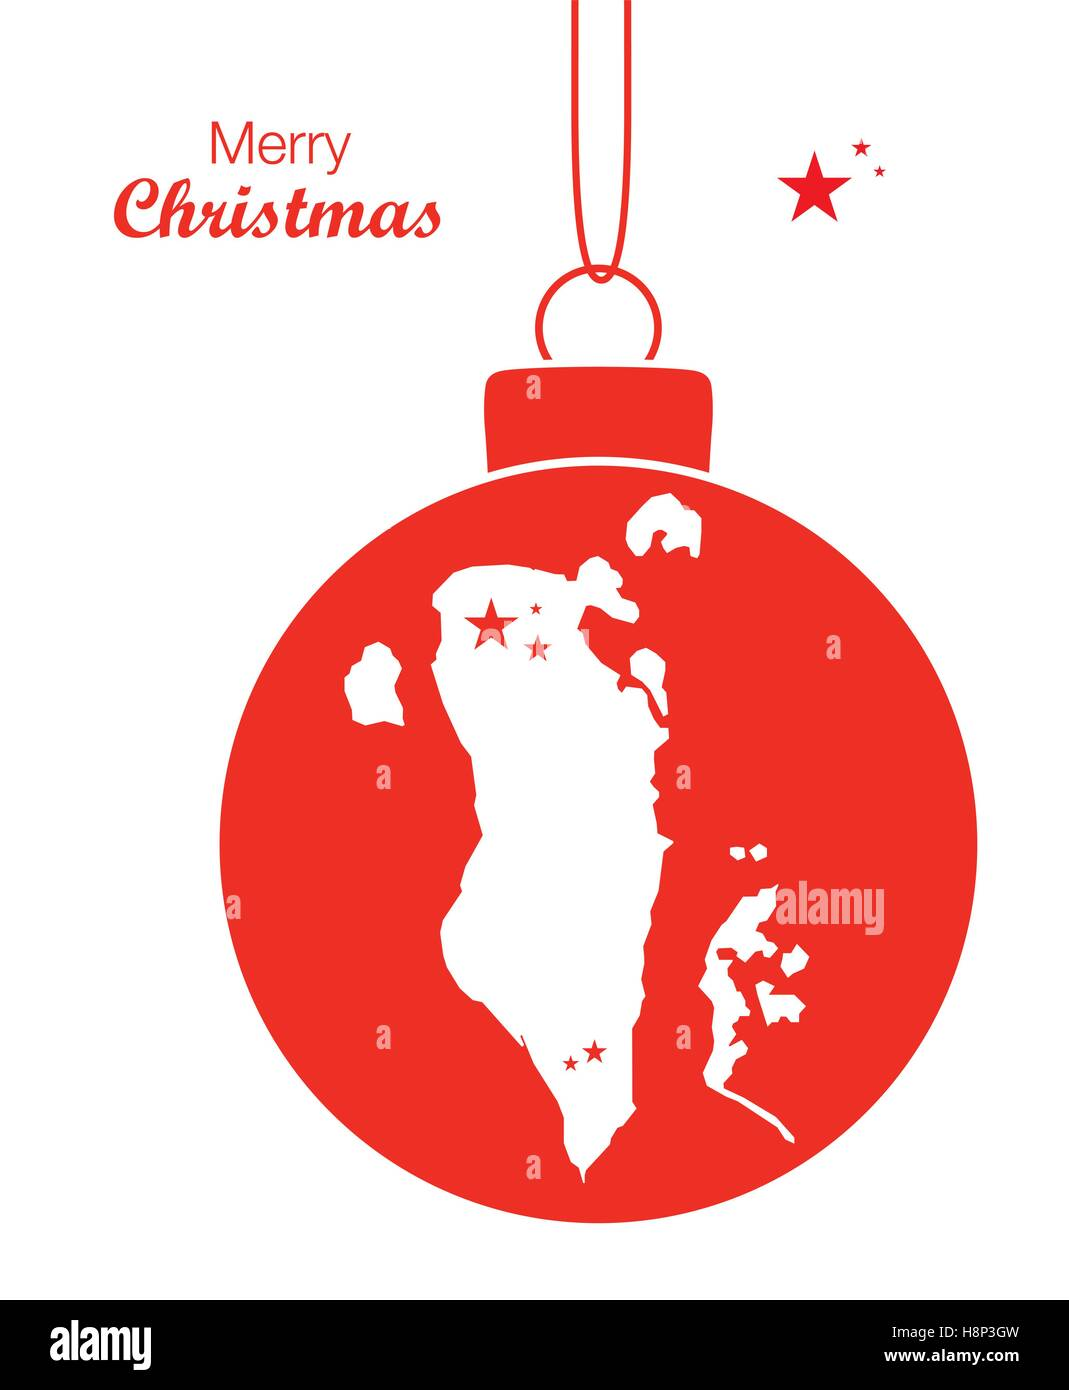 Merry Christmas Illustration Theme With Map Of Bahrain Stock - Bahrain map vector